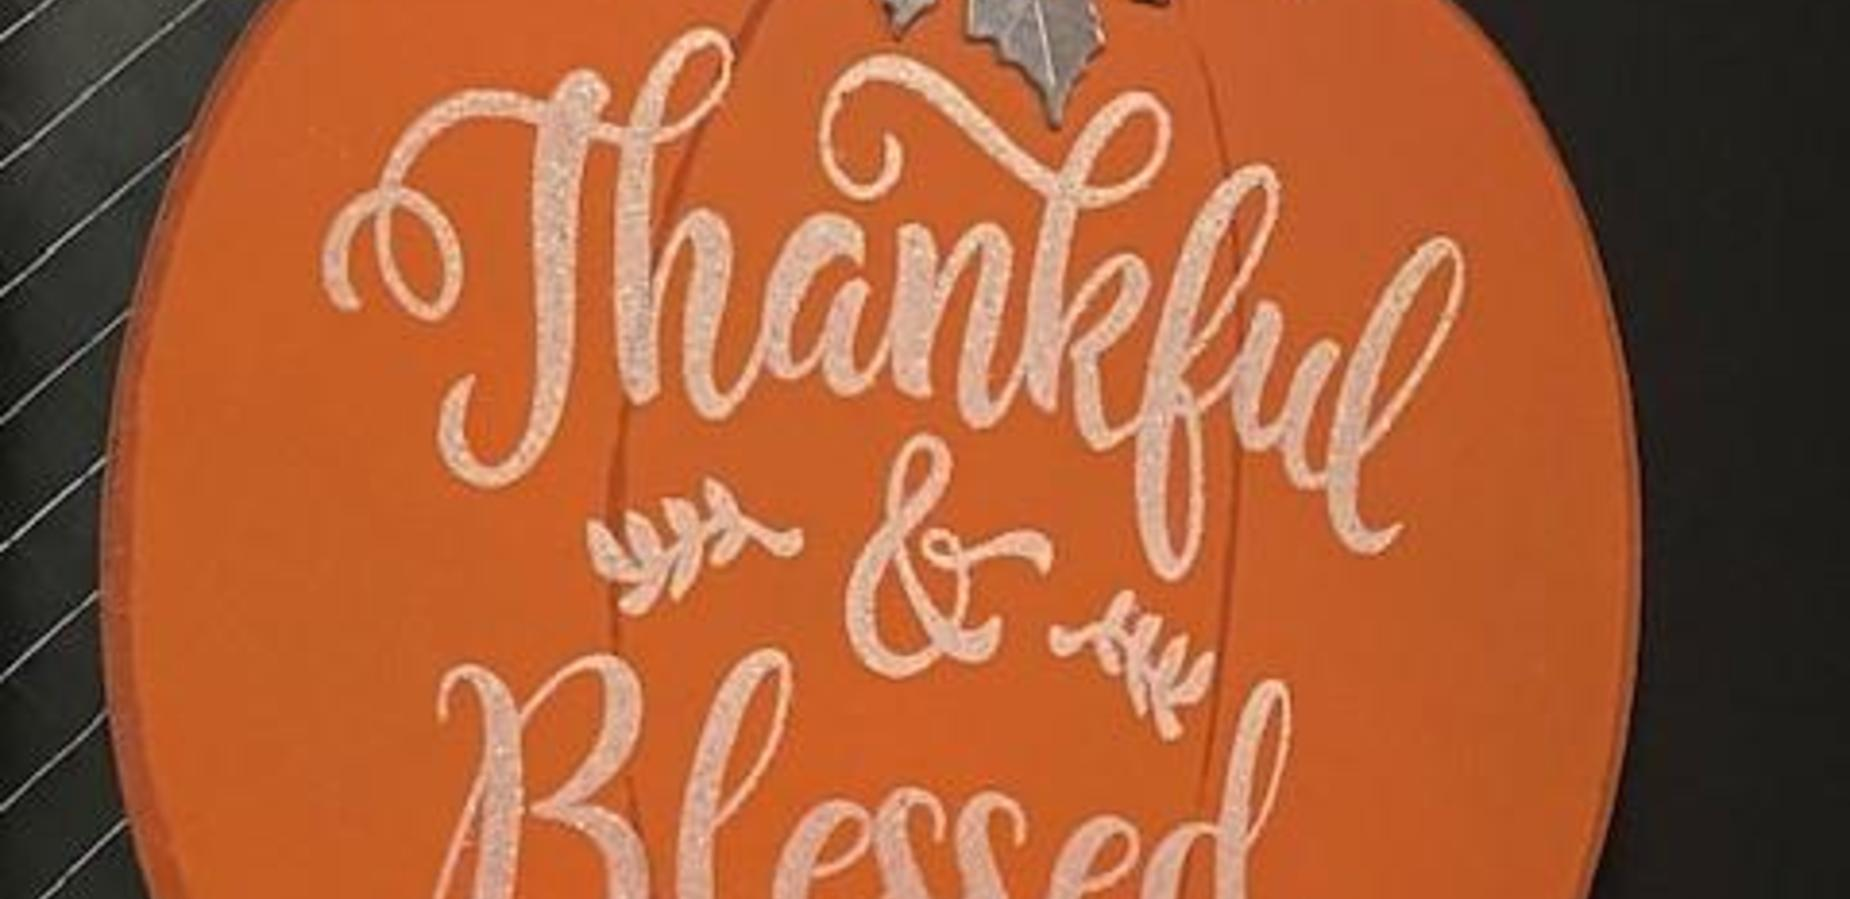 Thankful and Blessed Door Decoration